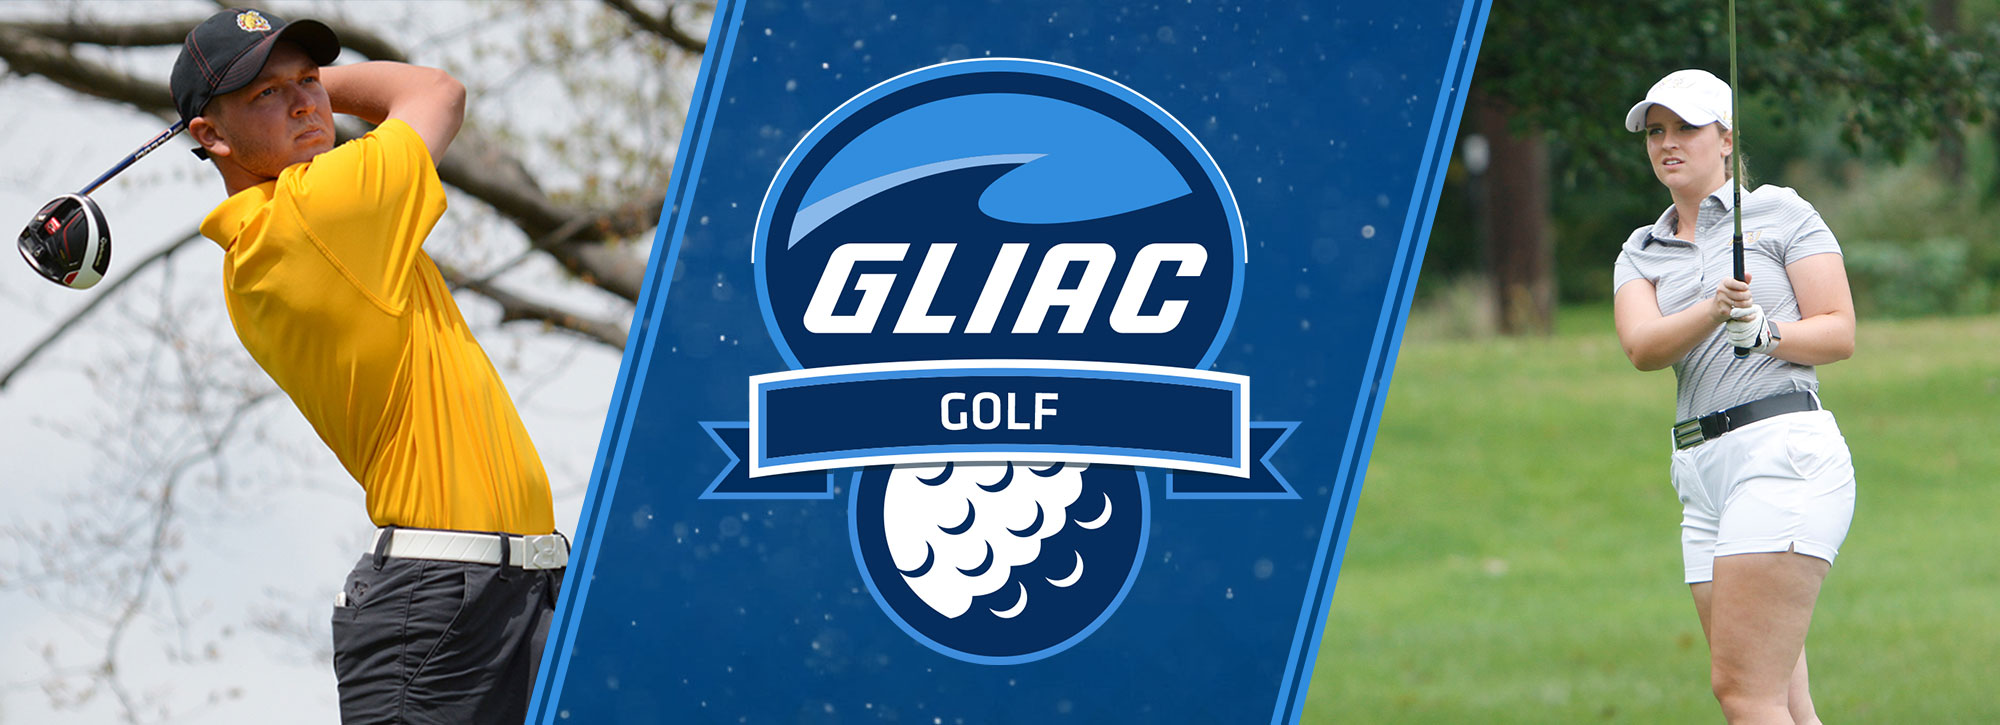 Ferris State's Hammett, Ashland's Lemons Selected GLIAC Golfers of the Week